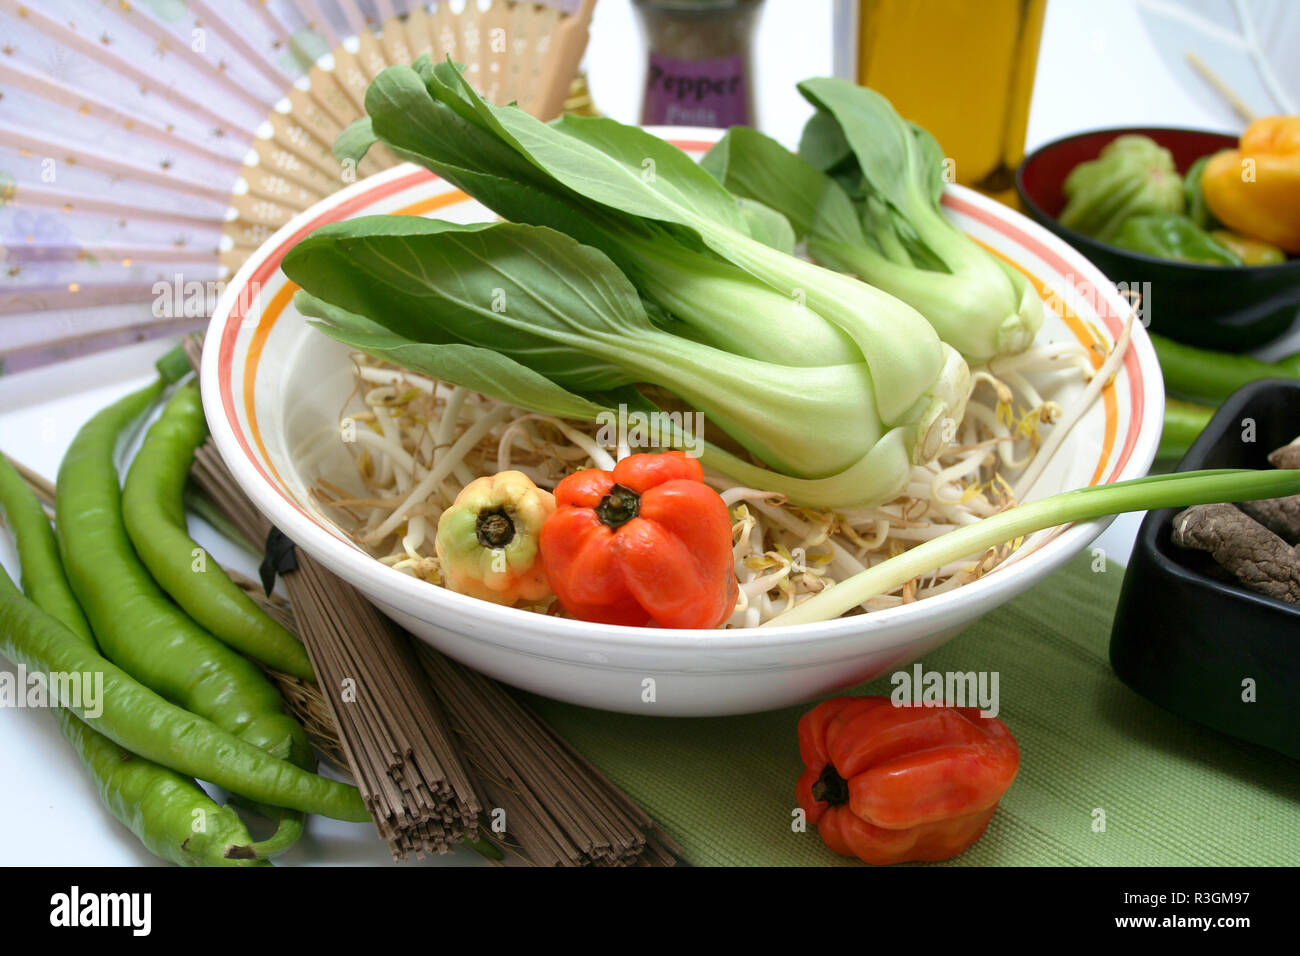 chinese vegetables - Stock Image